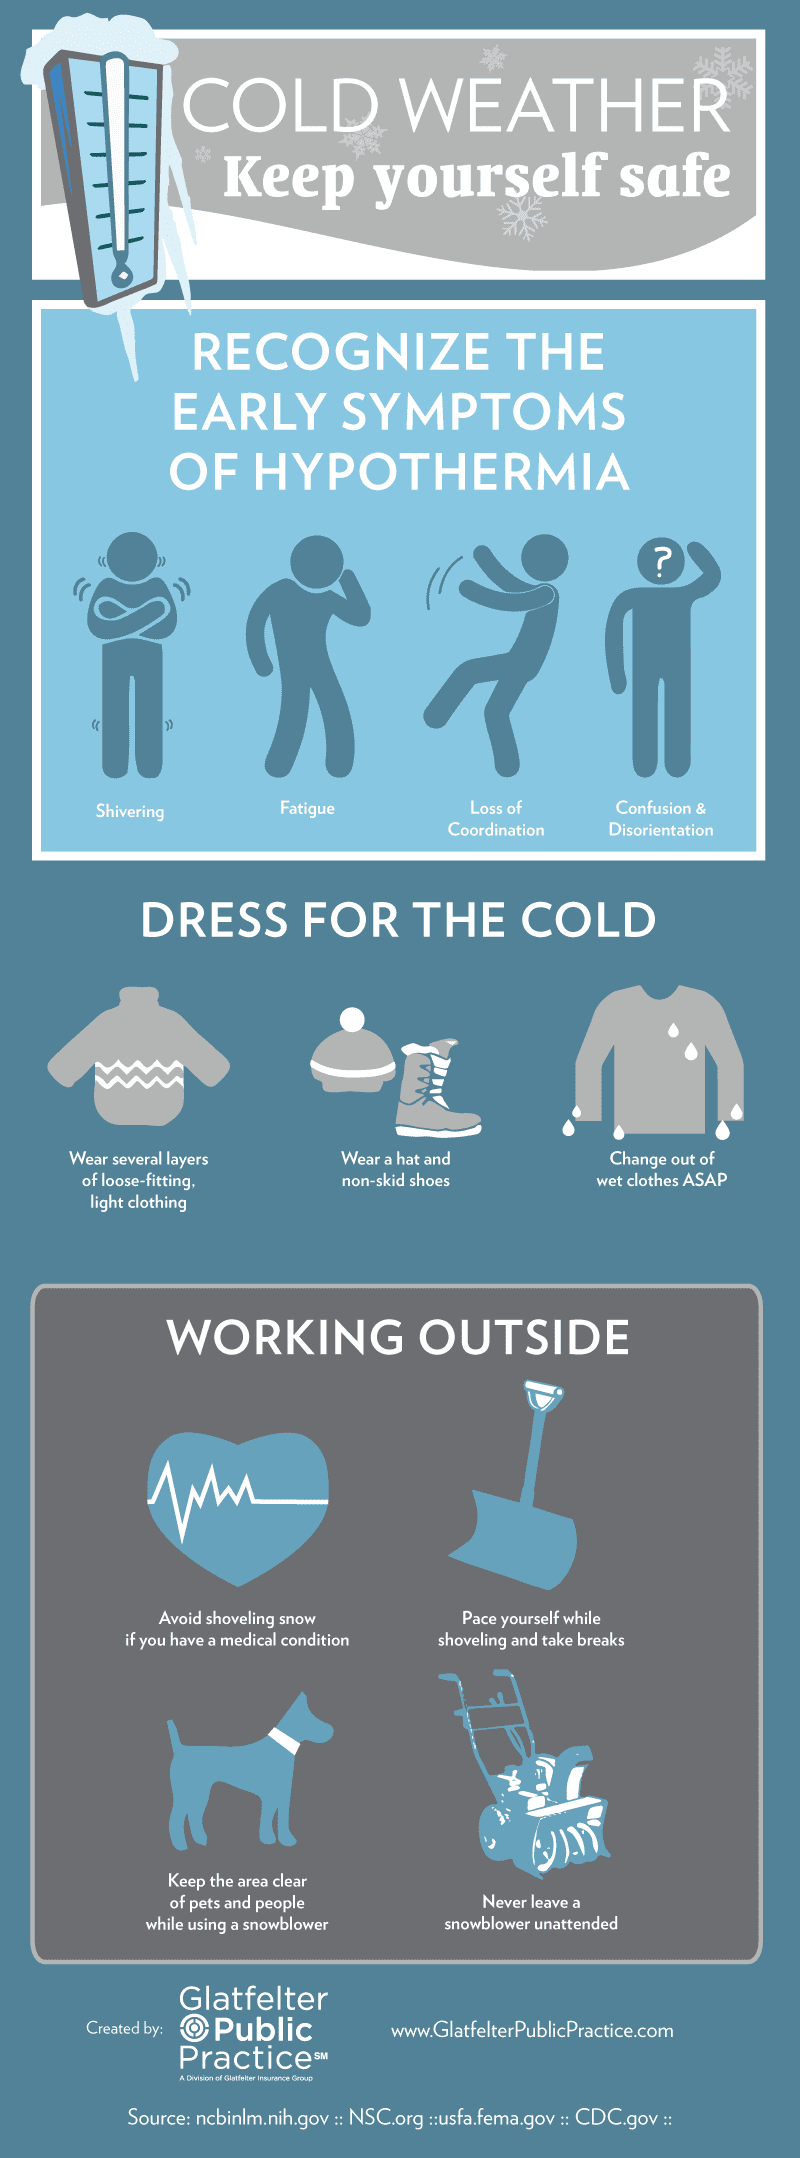 Cold-Weather-Safety_GPP